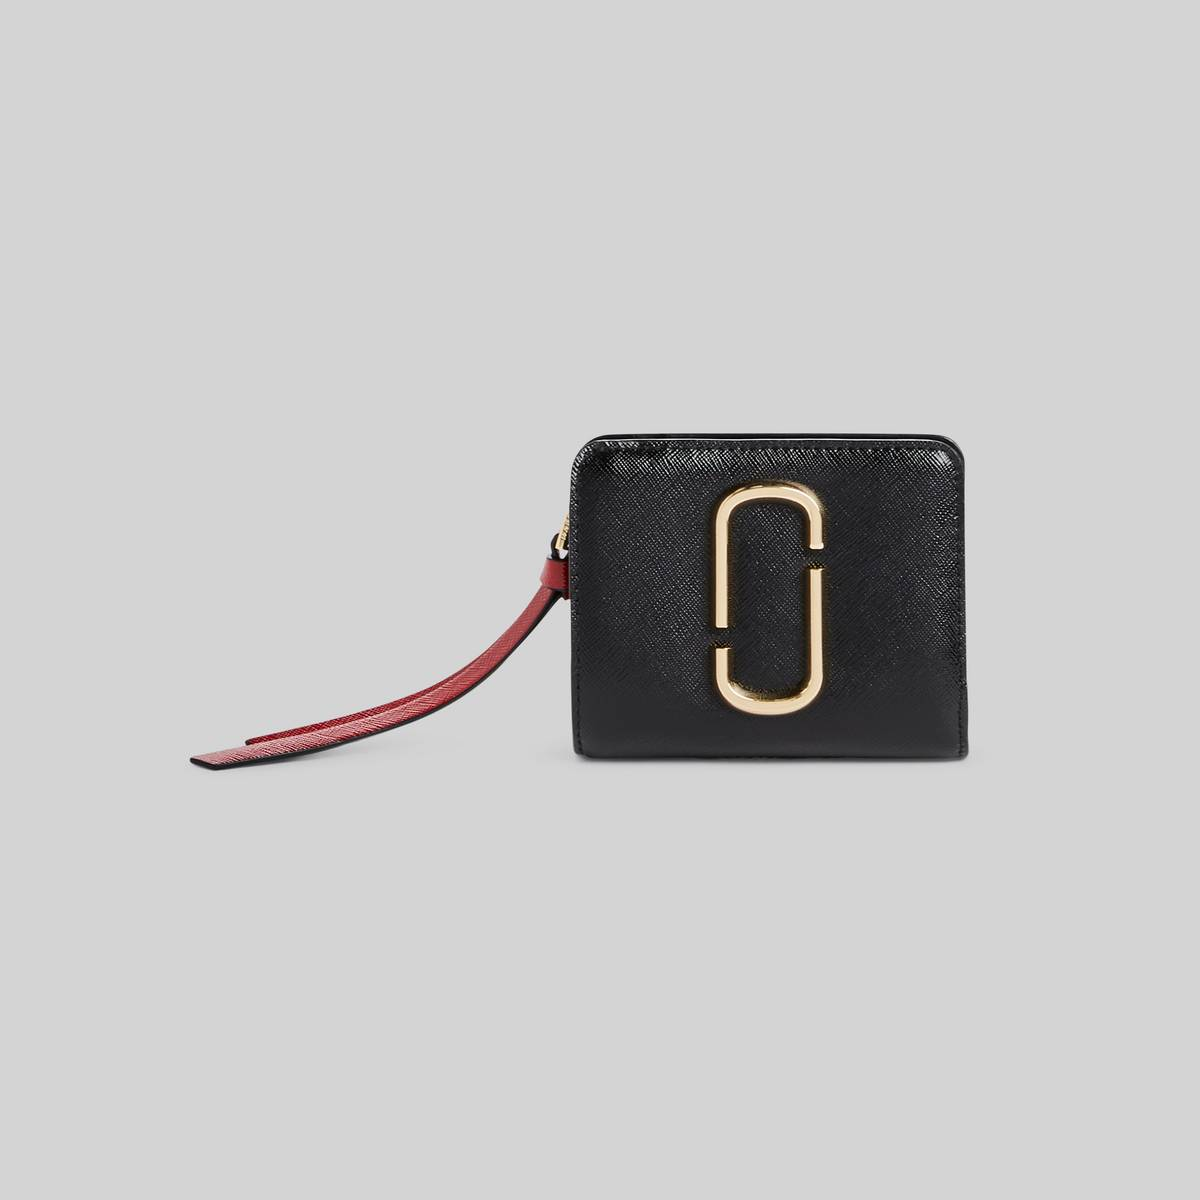 Mini leather wallet with Double-J hardware. | MARC JACOBS Women\\'s The Snapshot Mini Compact Wallet in Black/Chianti